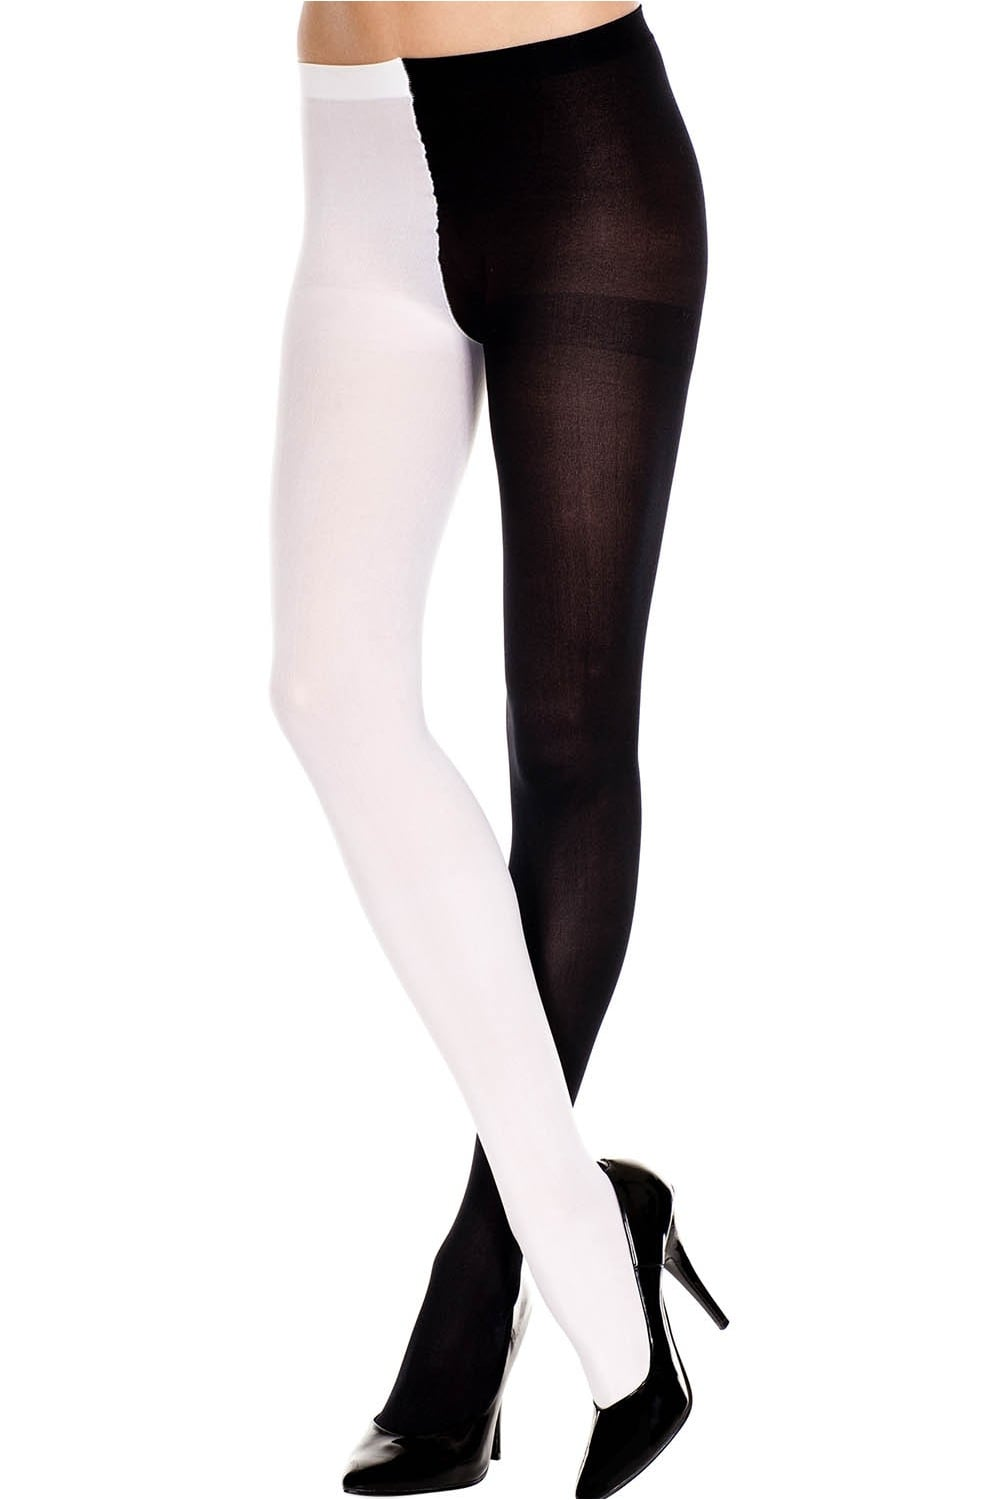 b44400f8a55df Music Legs Opaque Jester Tights